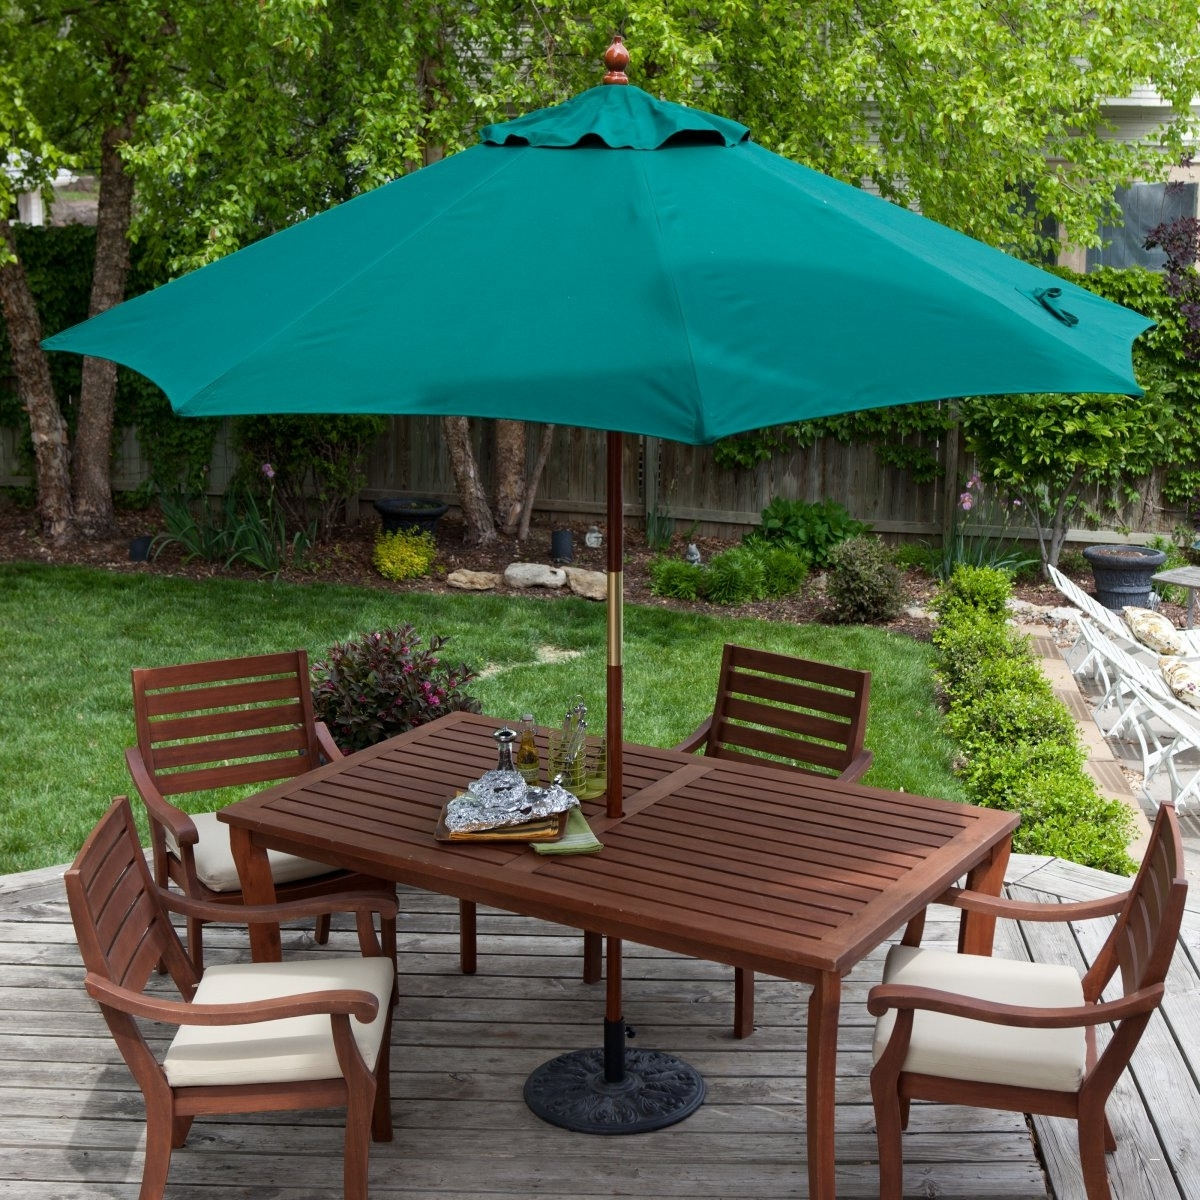 Current Small Patio Table With Umbrella Hole – Luxury Metal Patio Table With In Small Patio Tables With Umbrellas Hole (Gallery 4 of 20)